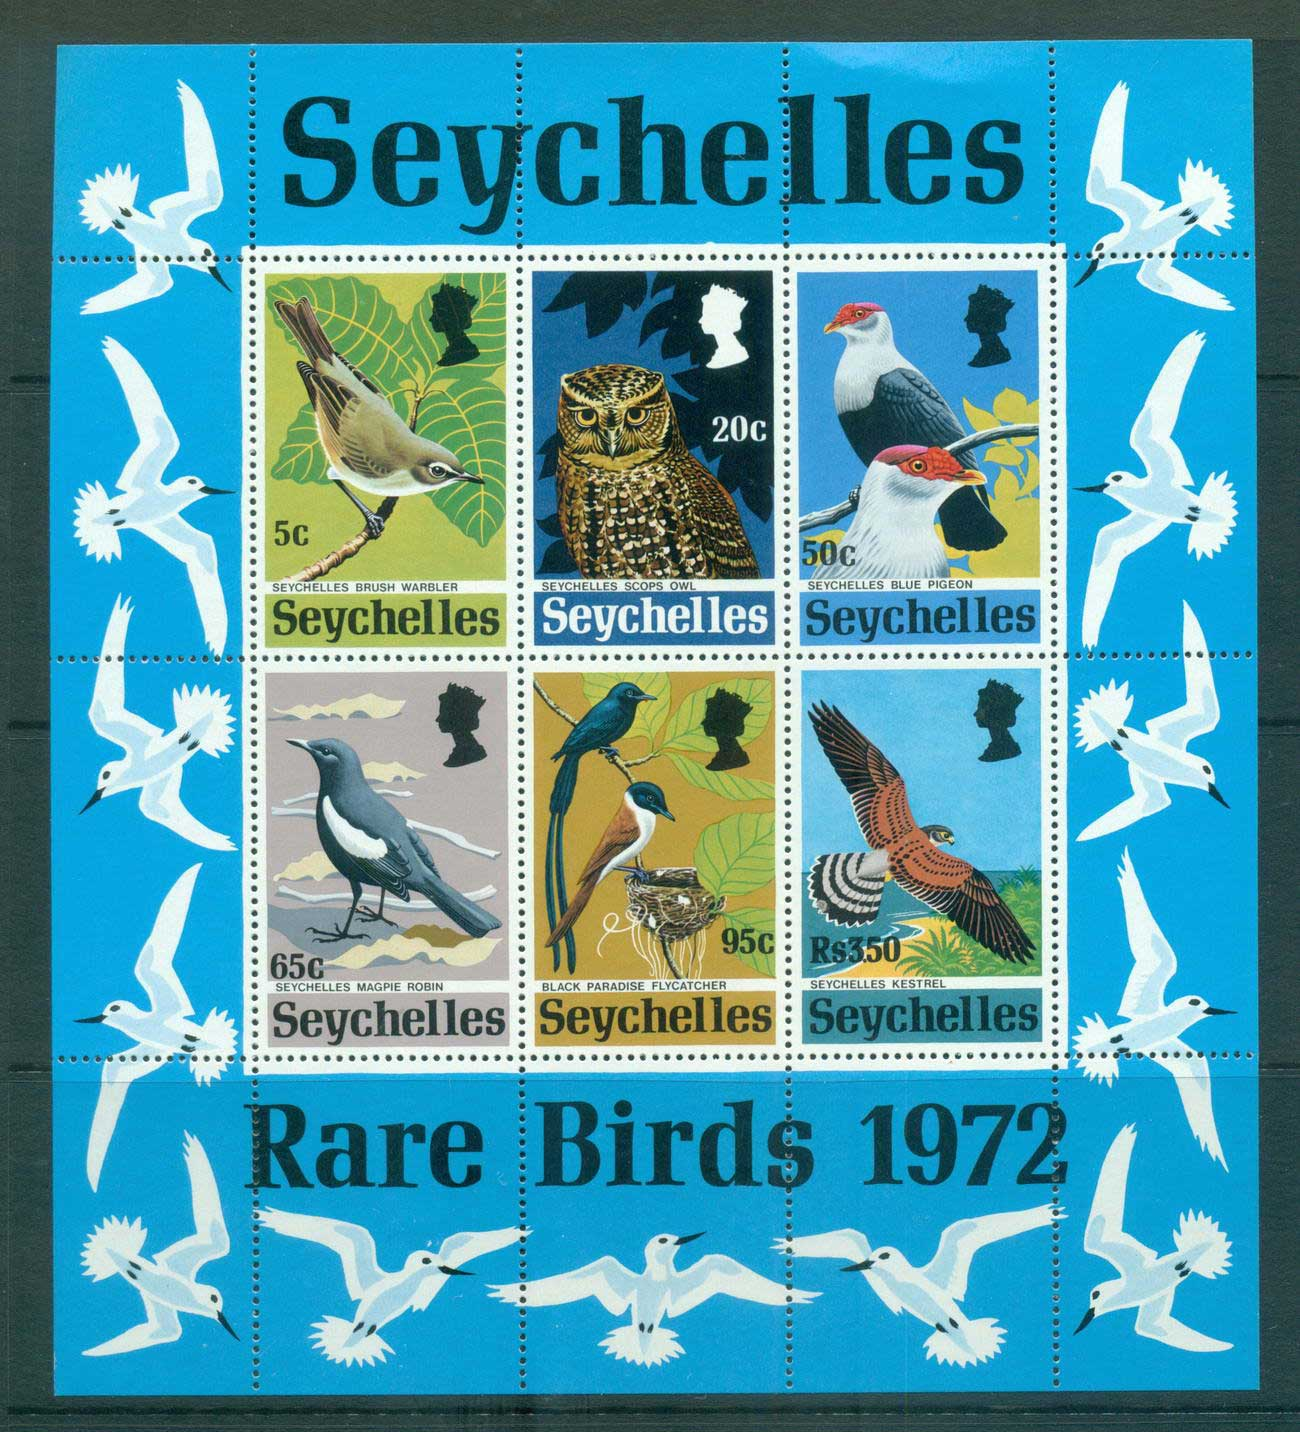 Seychelles 1972 Birds MS MUH Lot55388